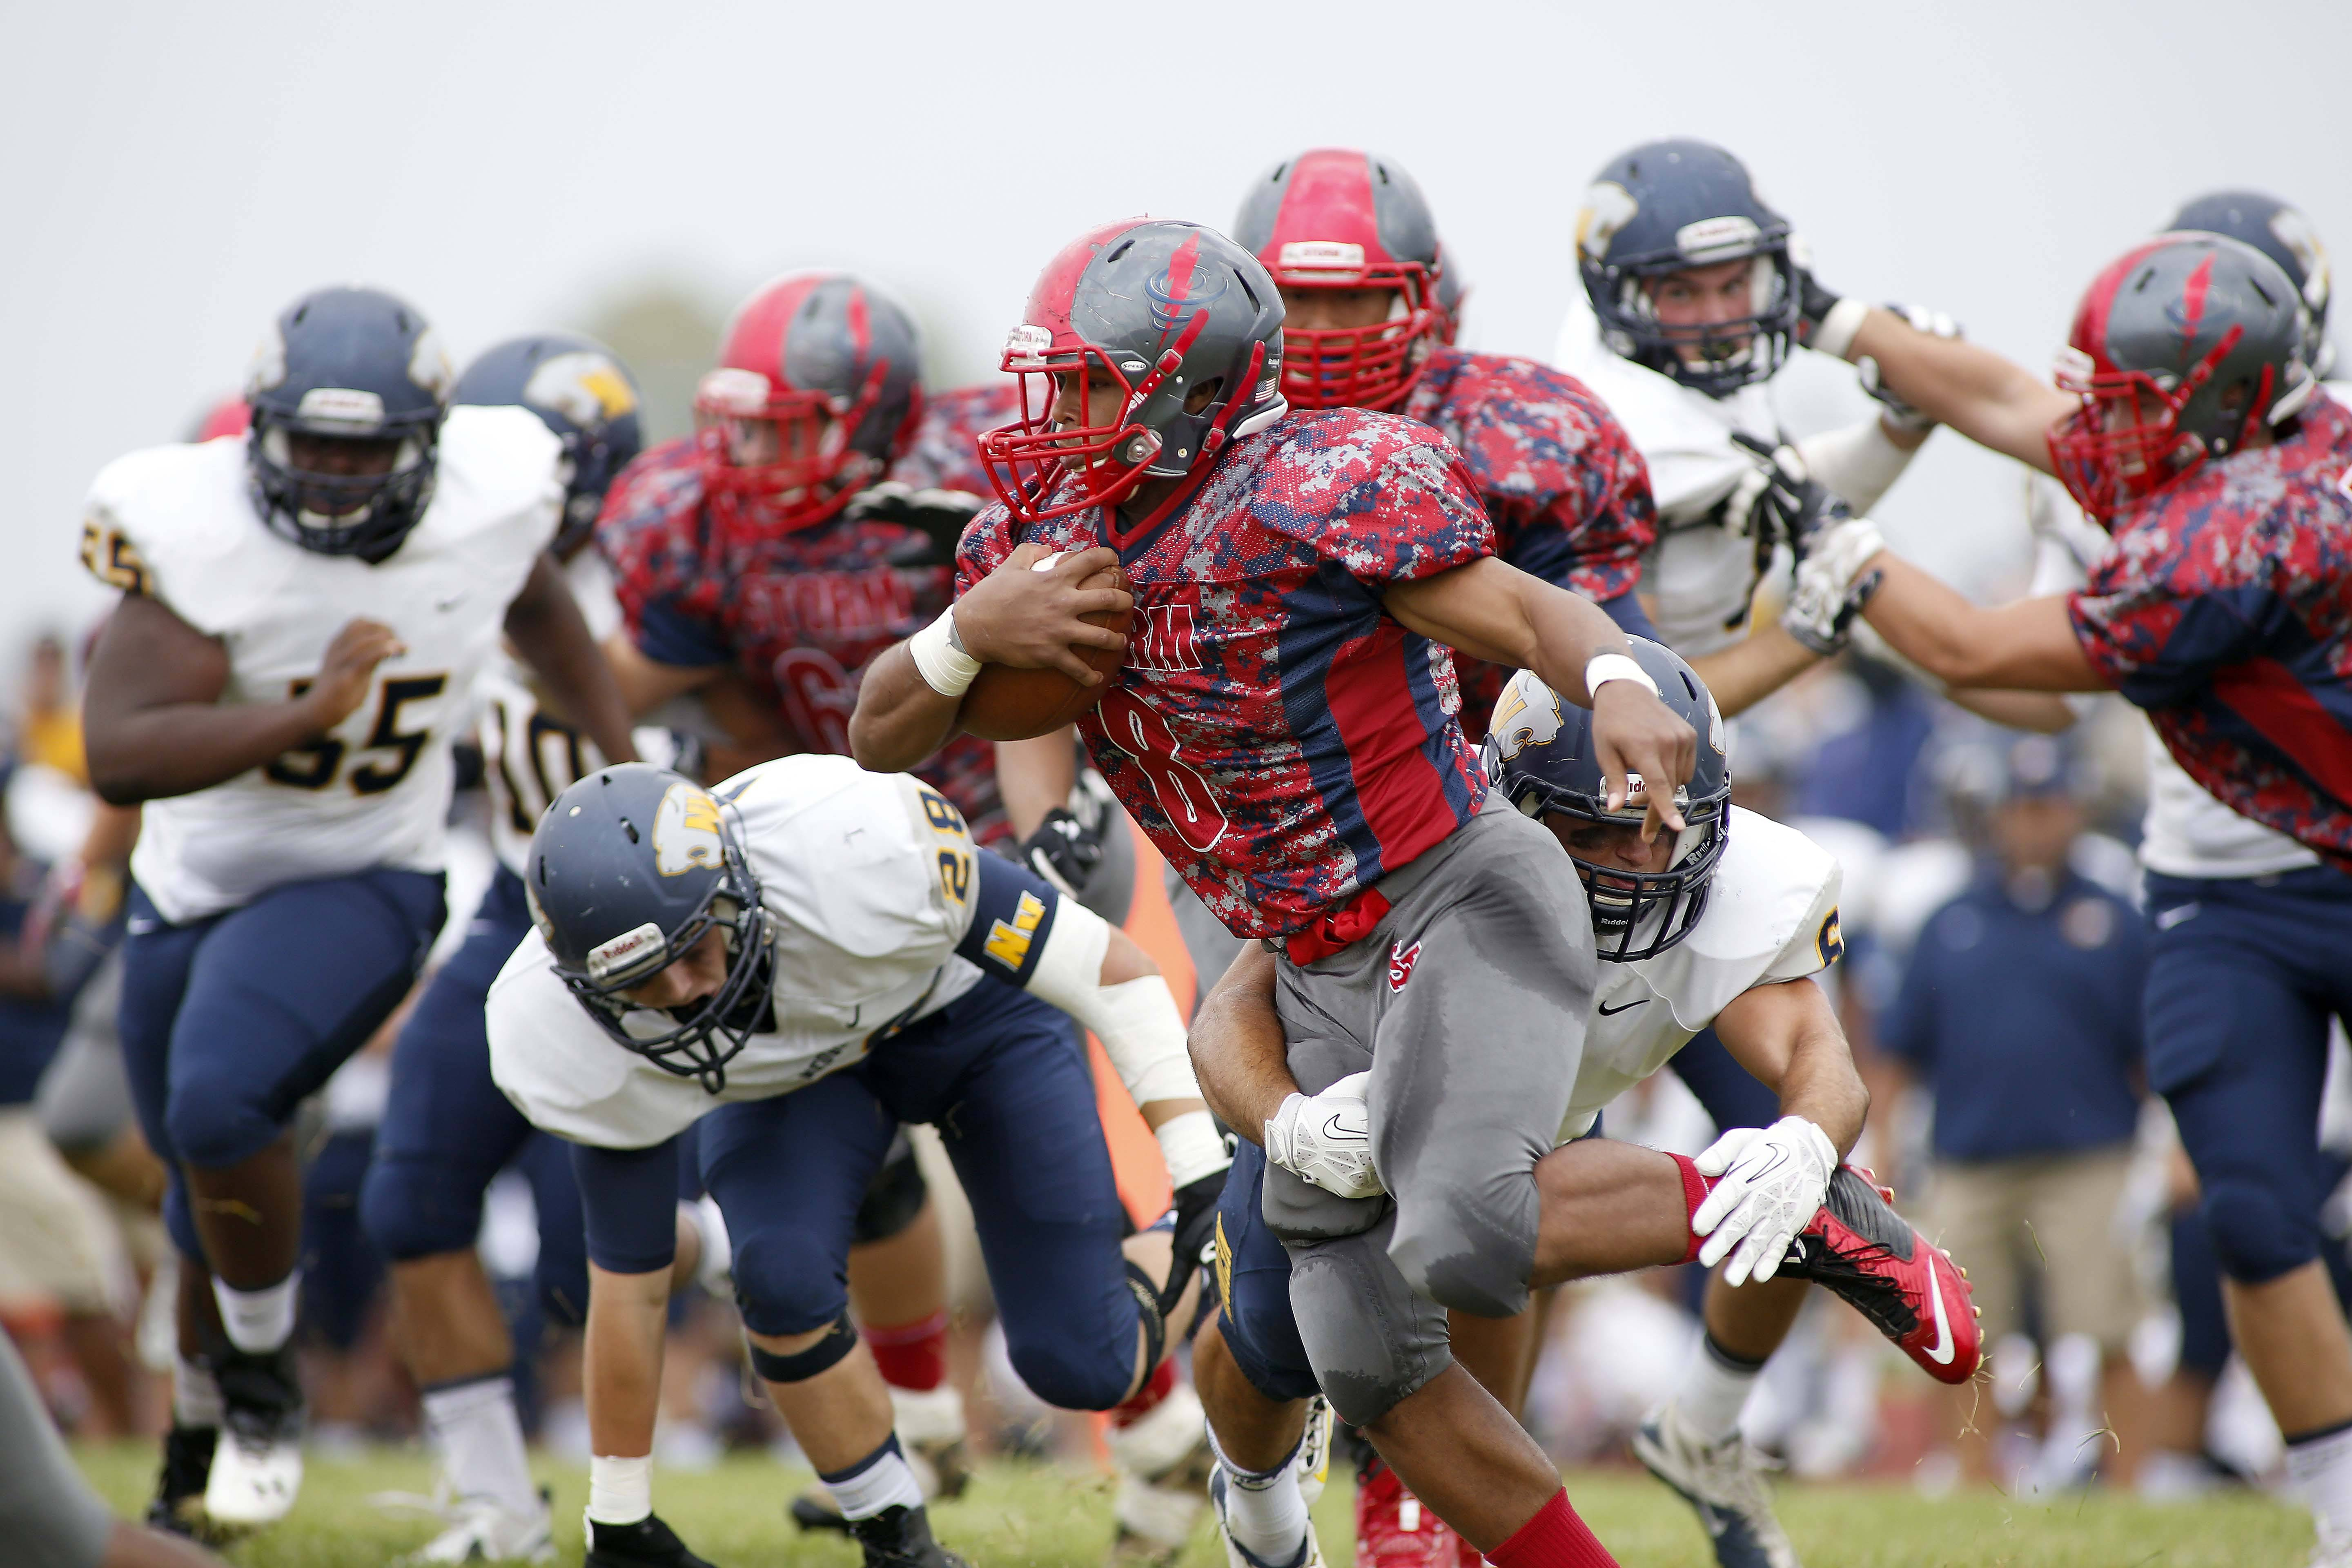 South Elgin running back Kyle Ware (8) tries to avoid a host of Neuqua Valley players during Neuqua Valley football at South Elgin Saturday.